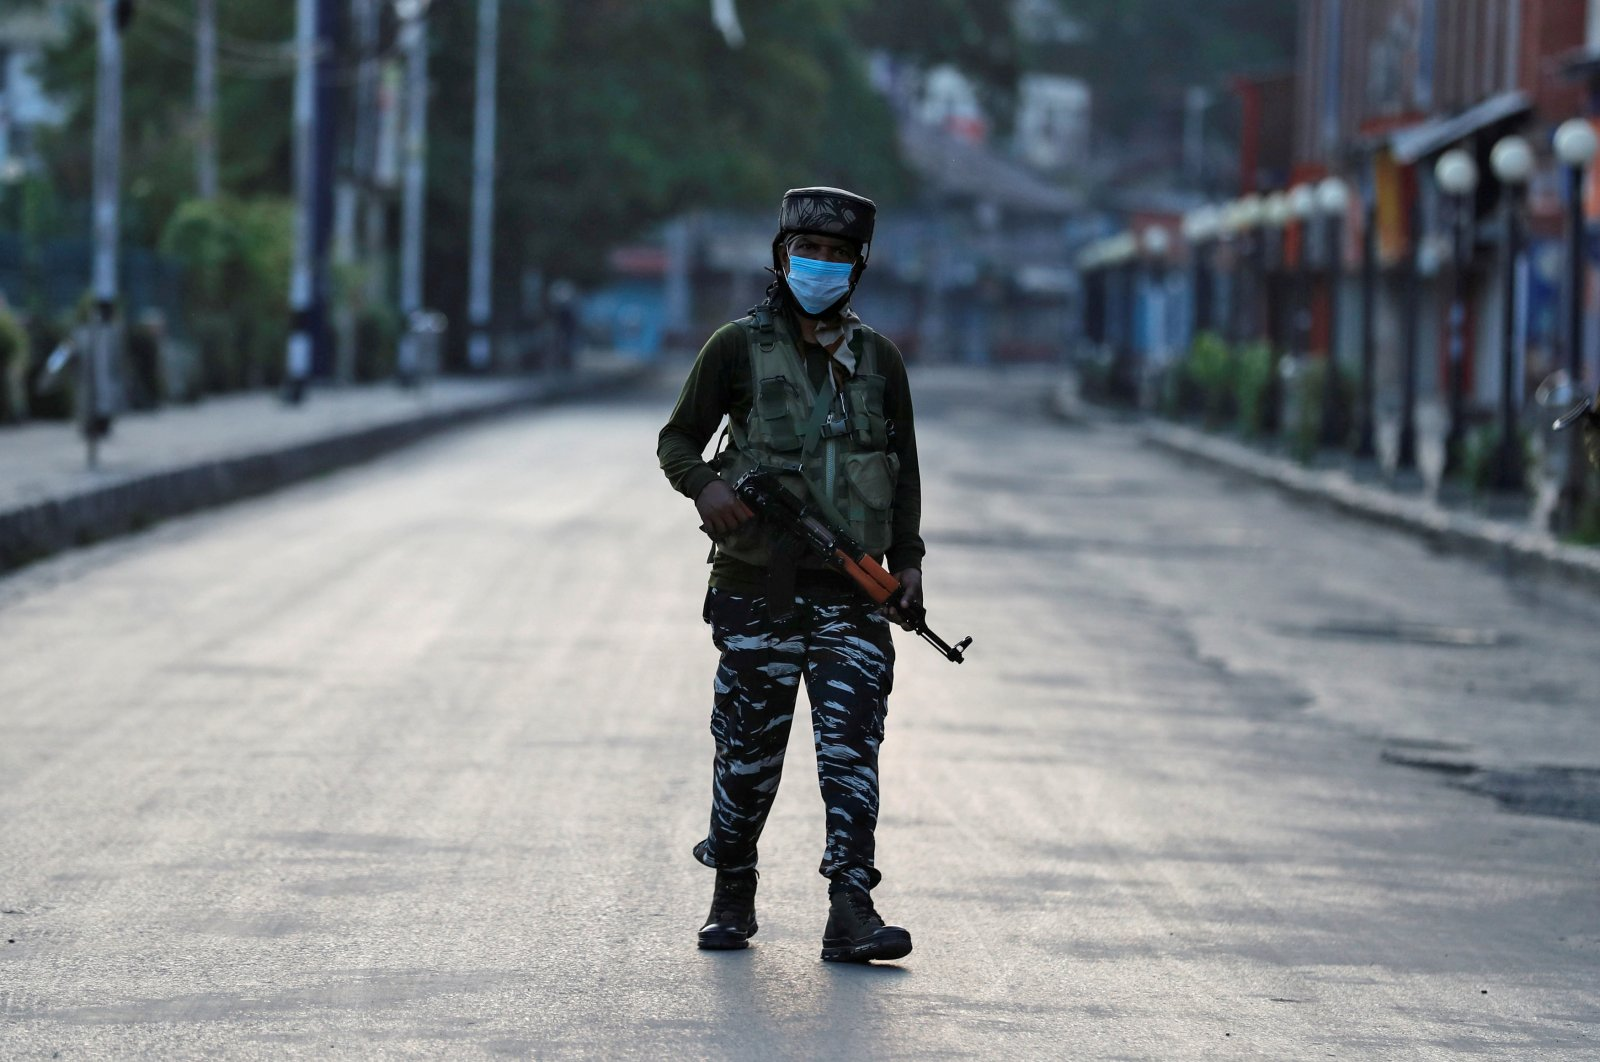 An Indian Central Reserve Police Force (CRPF) officer patrols on an empty street, Srinagar, Indian-occupied Jammu and Kashmir, Aug. 5, 2020. (Reuters Photo)